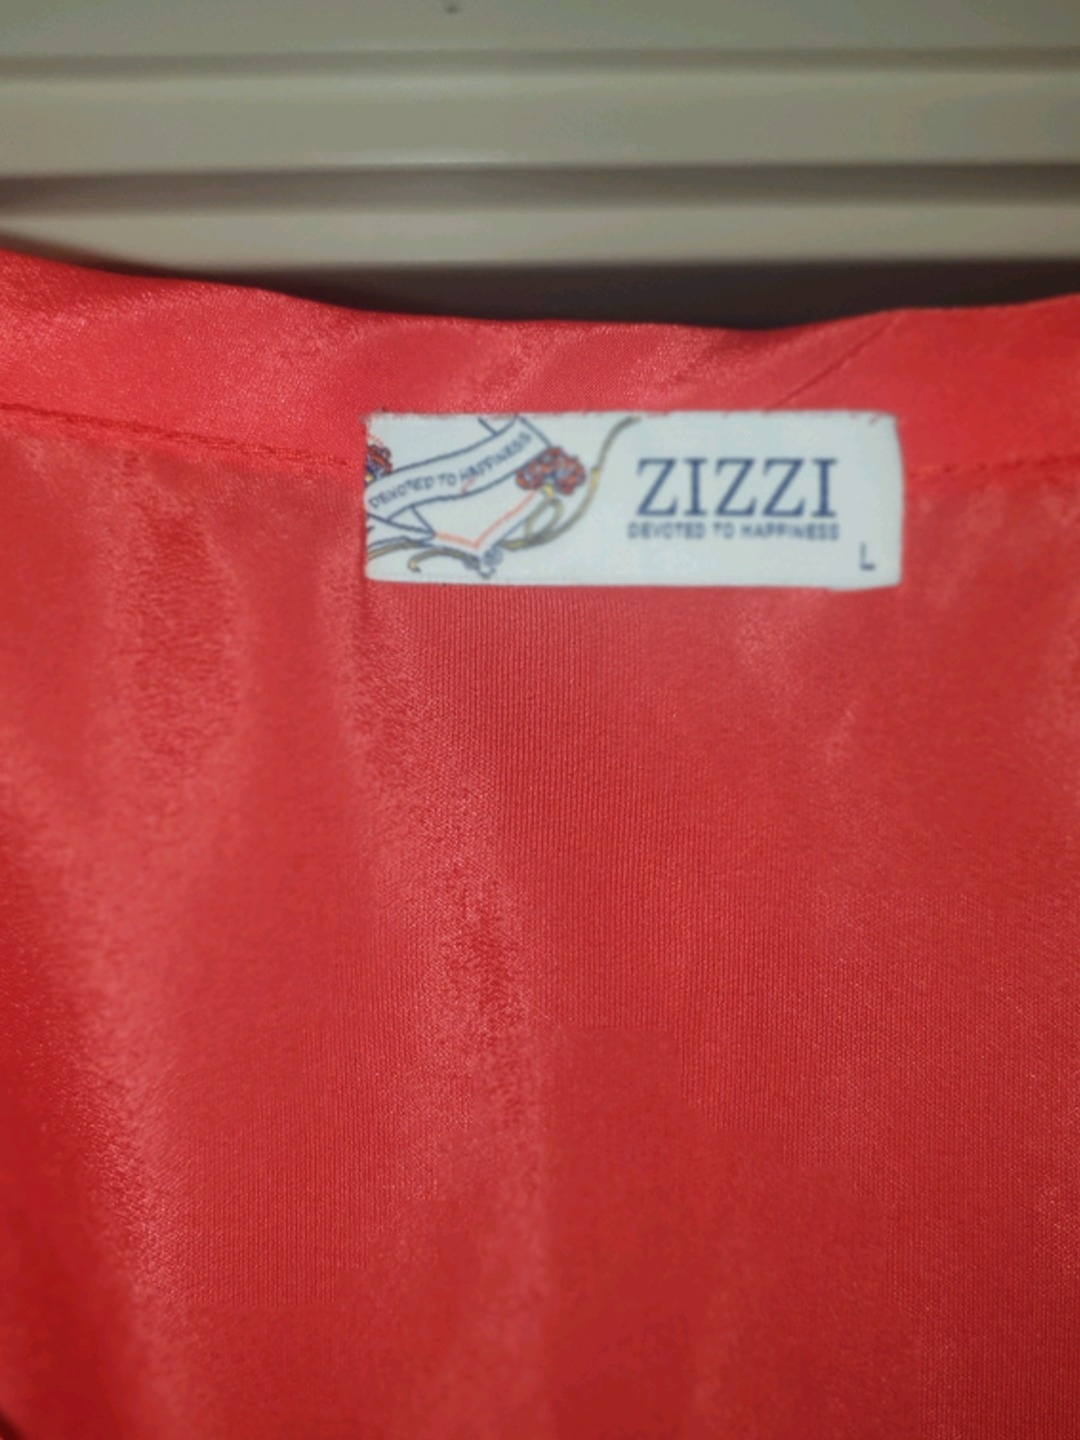 Women's tops & t-shirts - ZIZZI photo 3